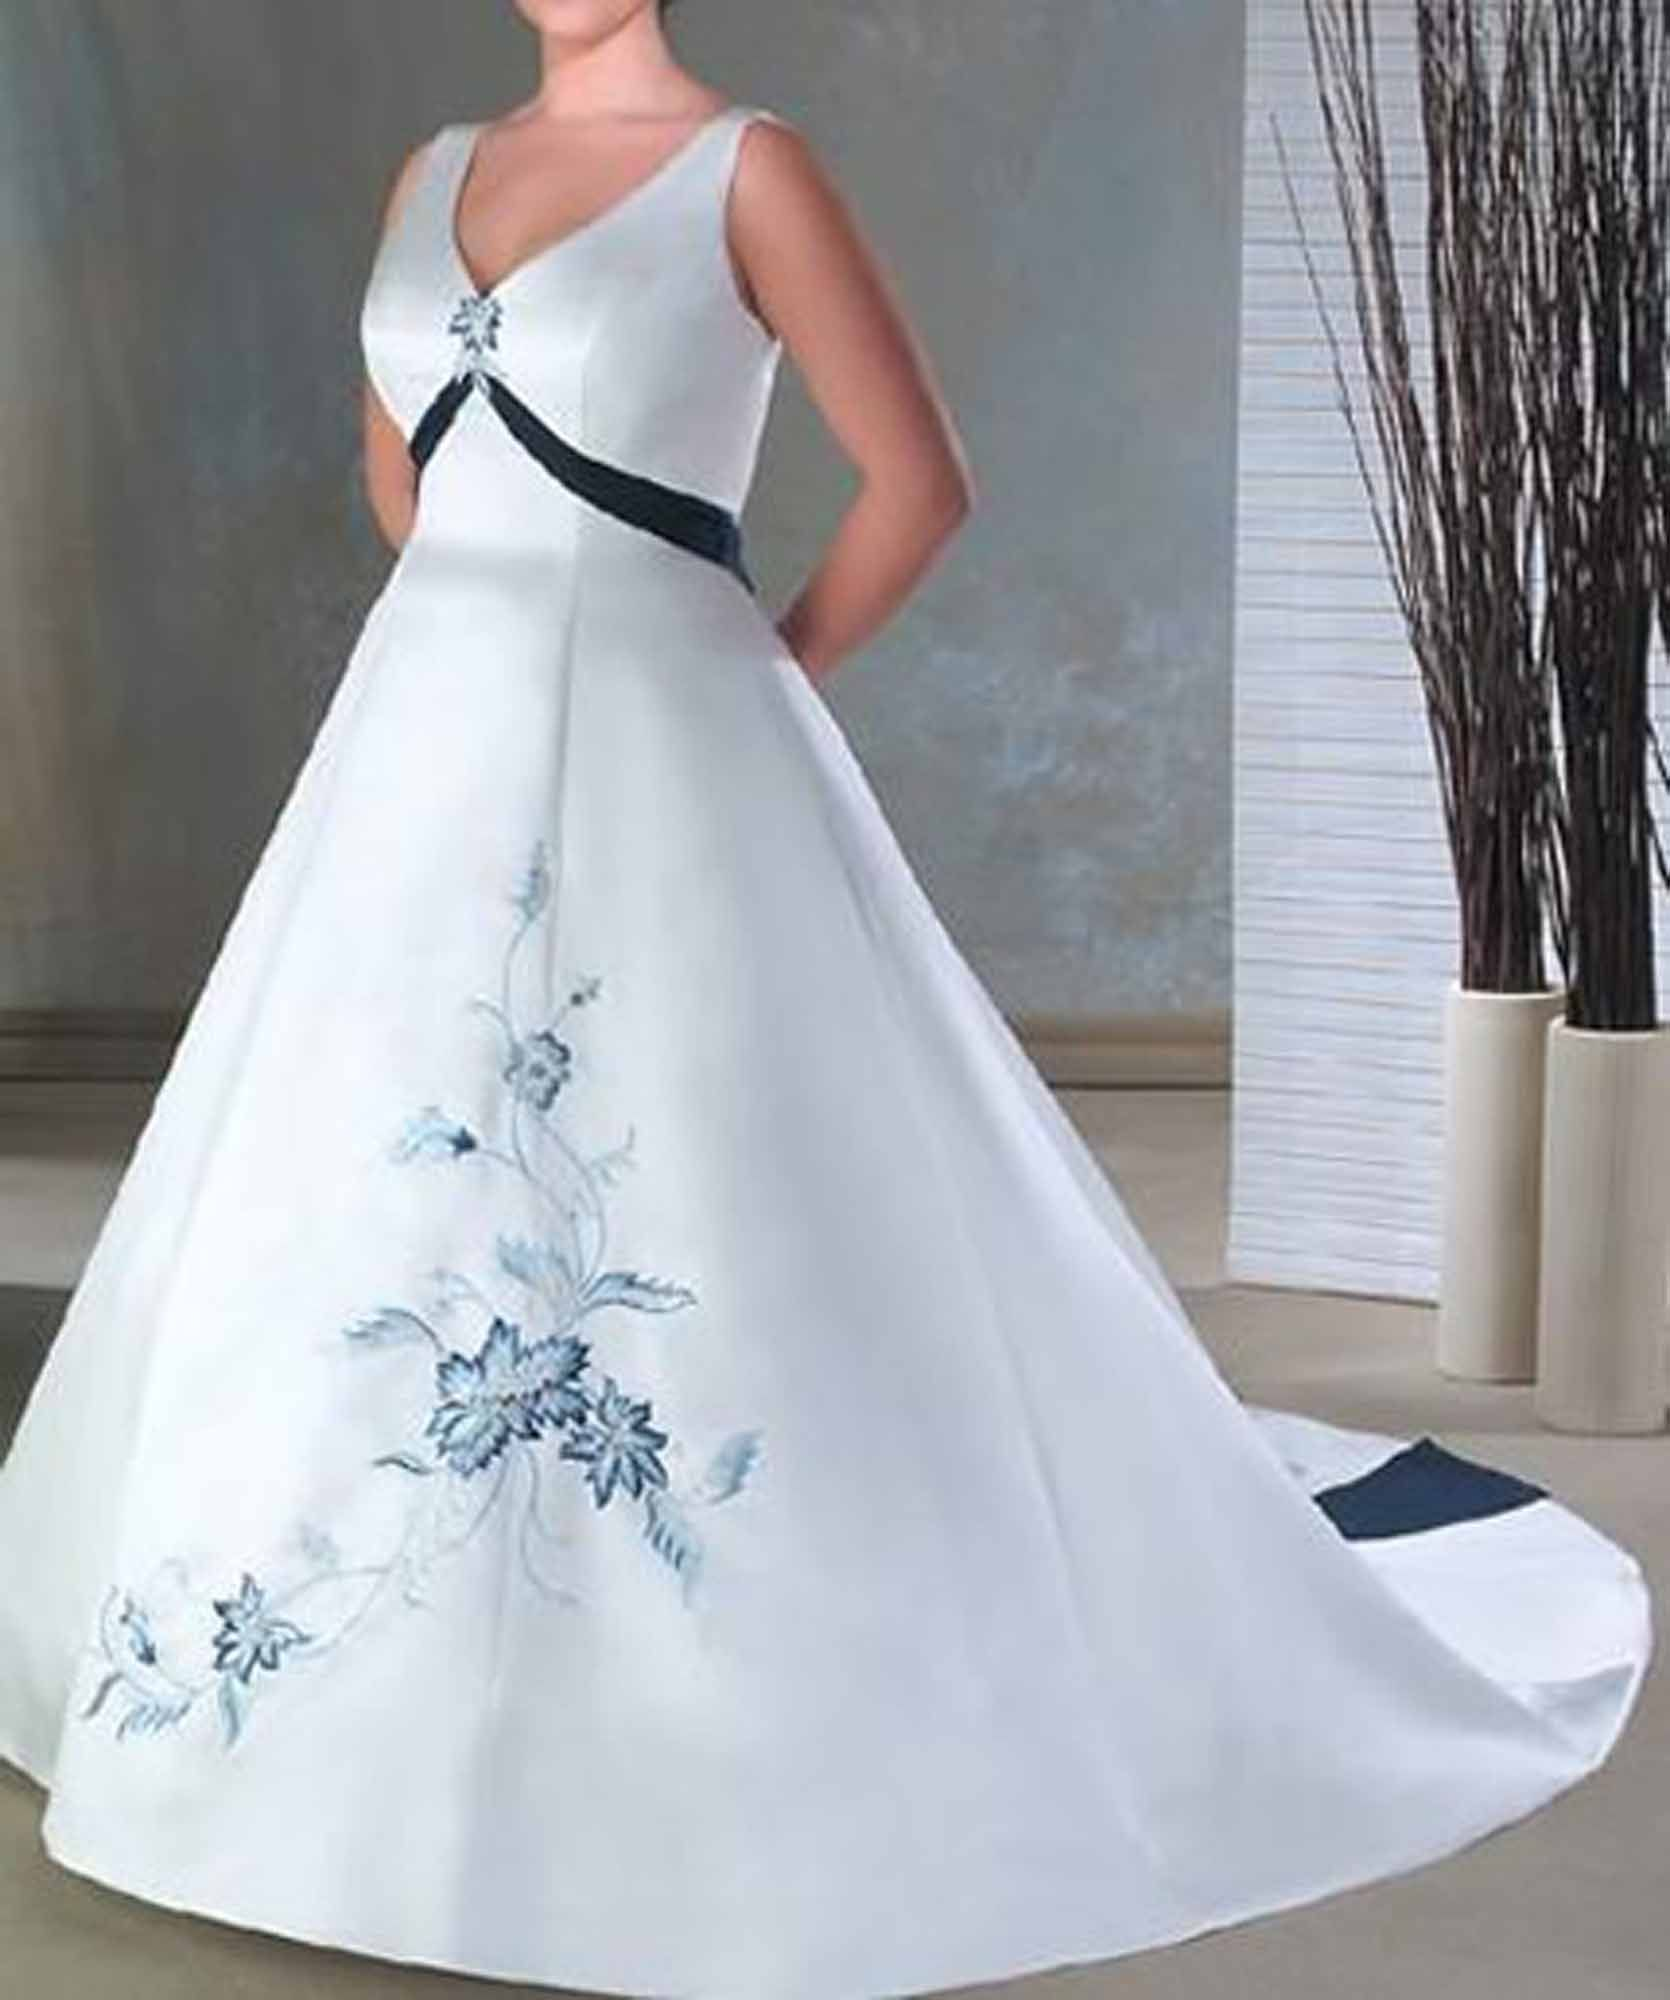 White and blue wedding dress  white and blue wedding dress  Amy bridal  Pinterest  Blue wedding